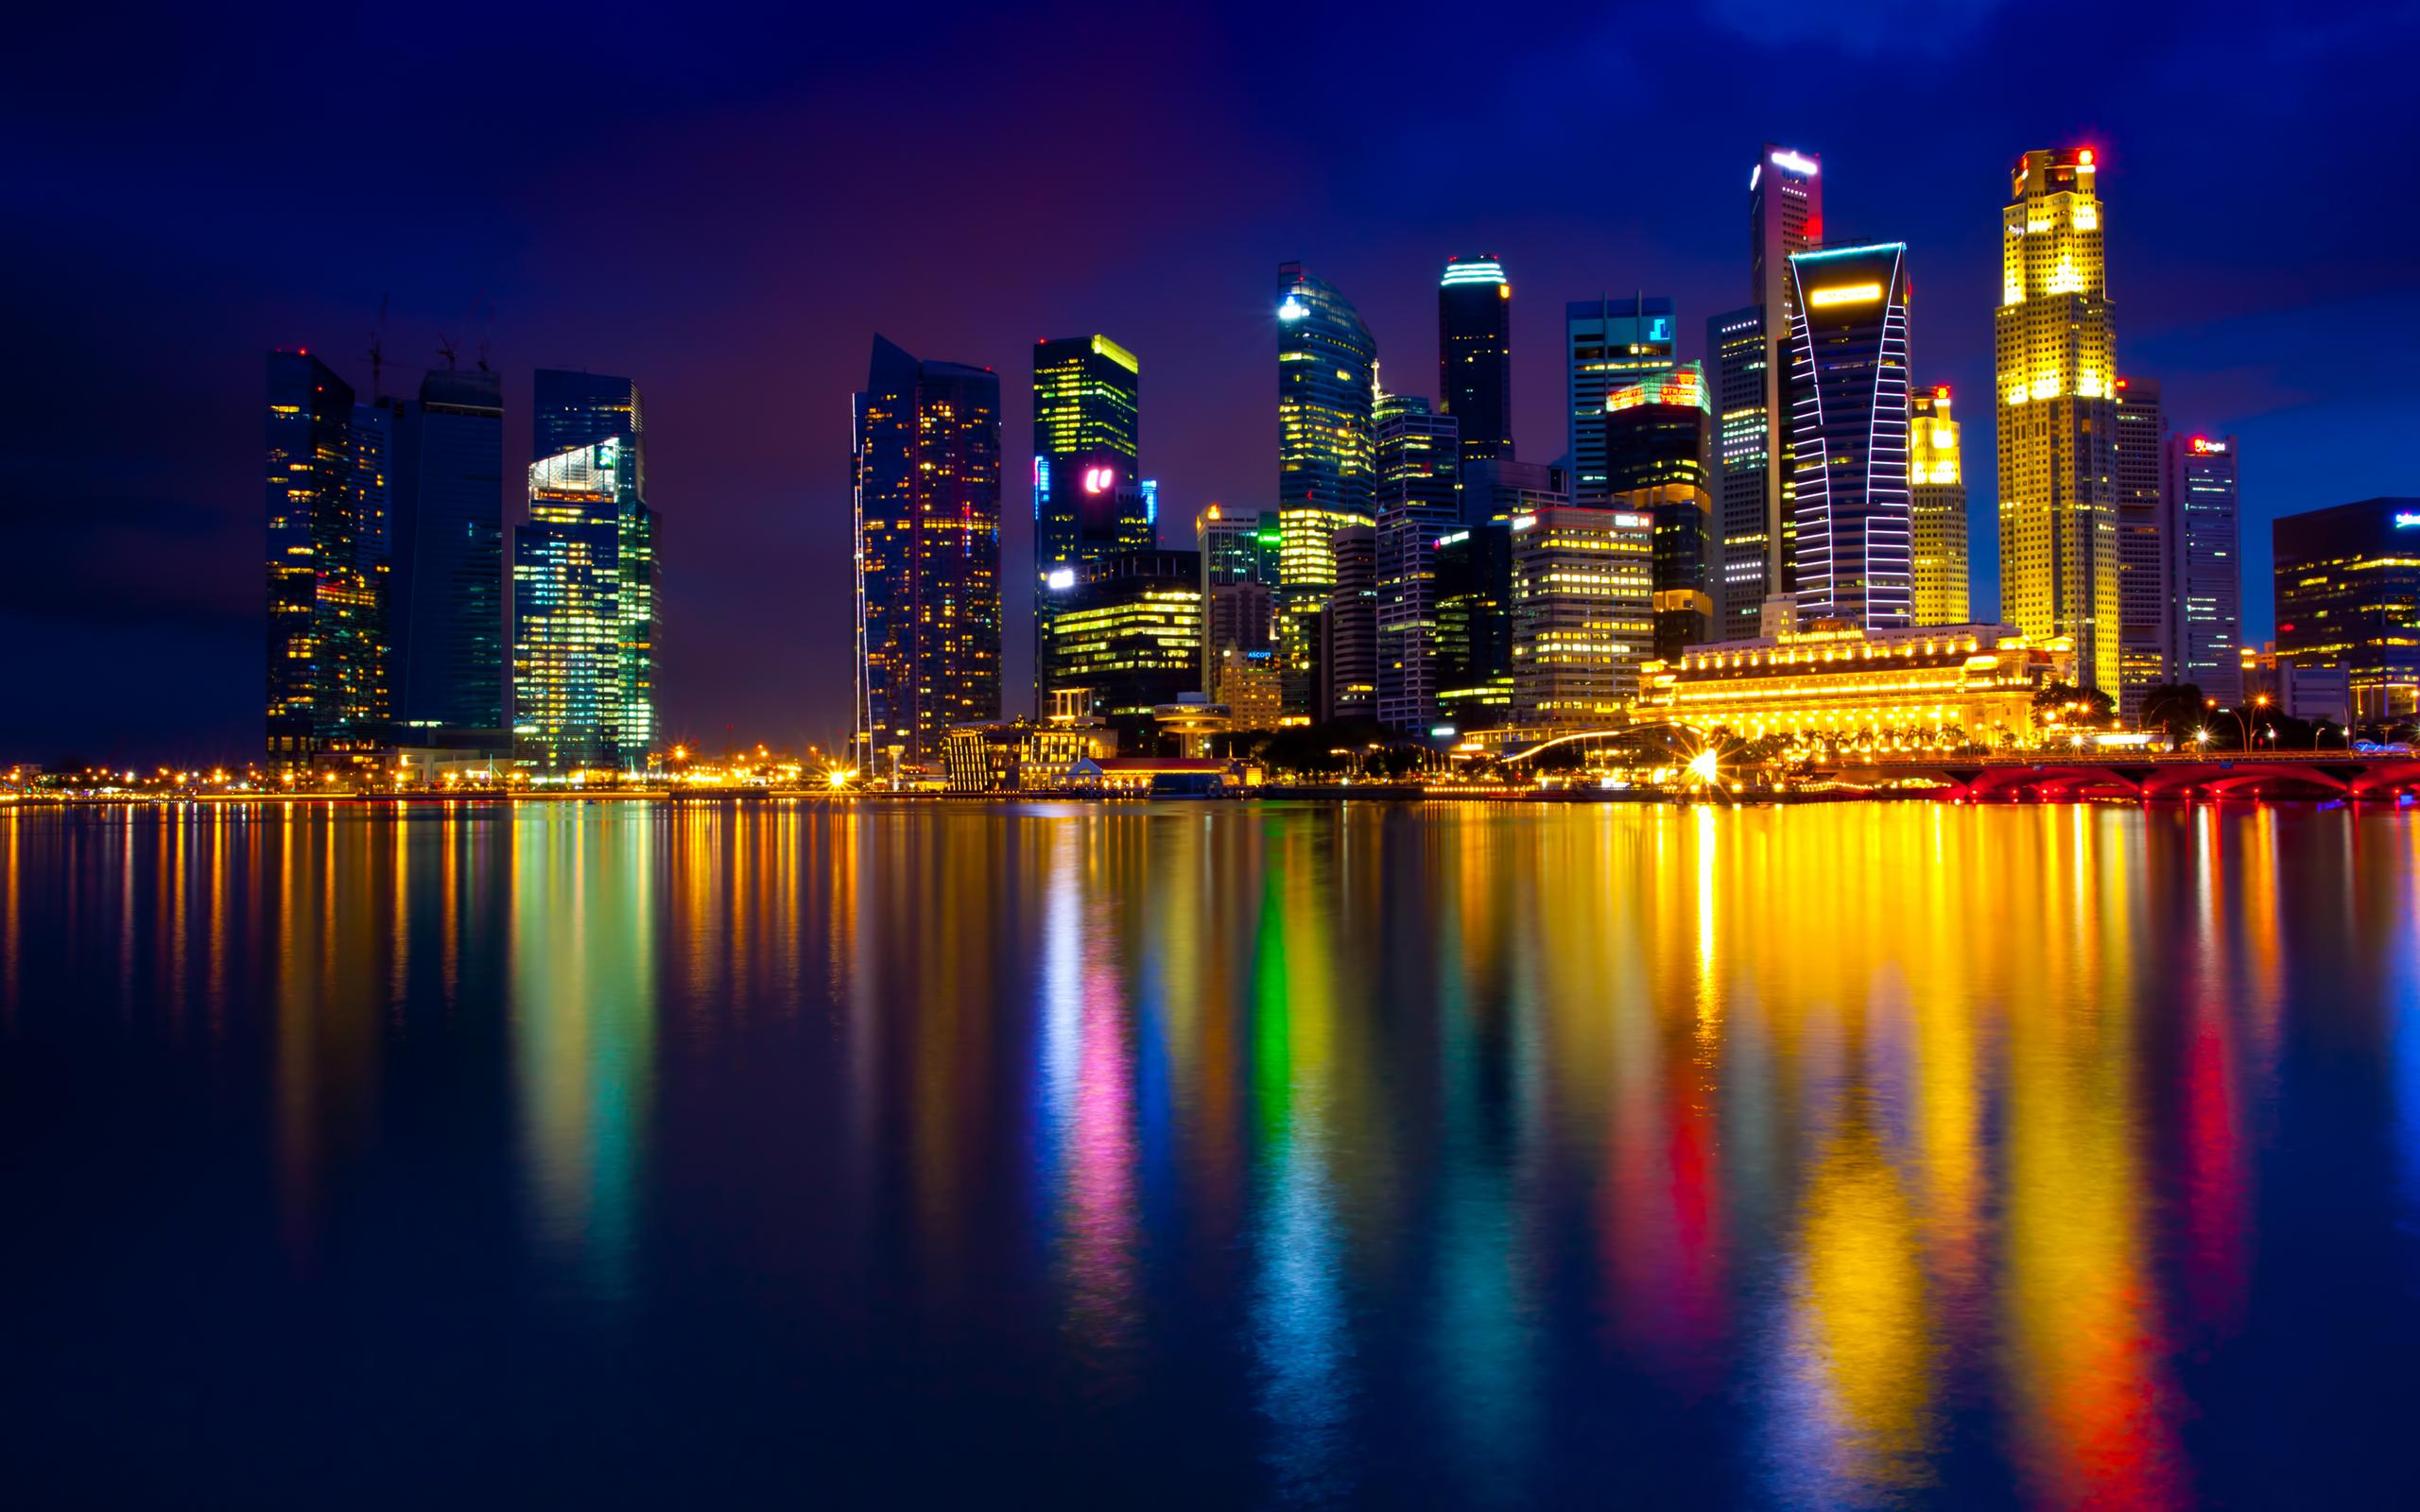 CITY AT NIGHT WALLPAPER   76590   HD Wallpapers   [wallpapersinhq 2560x1600